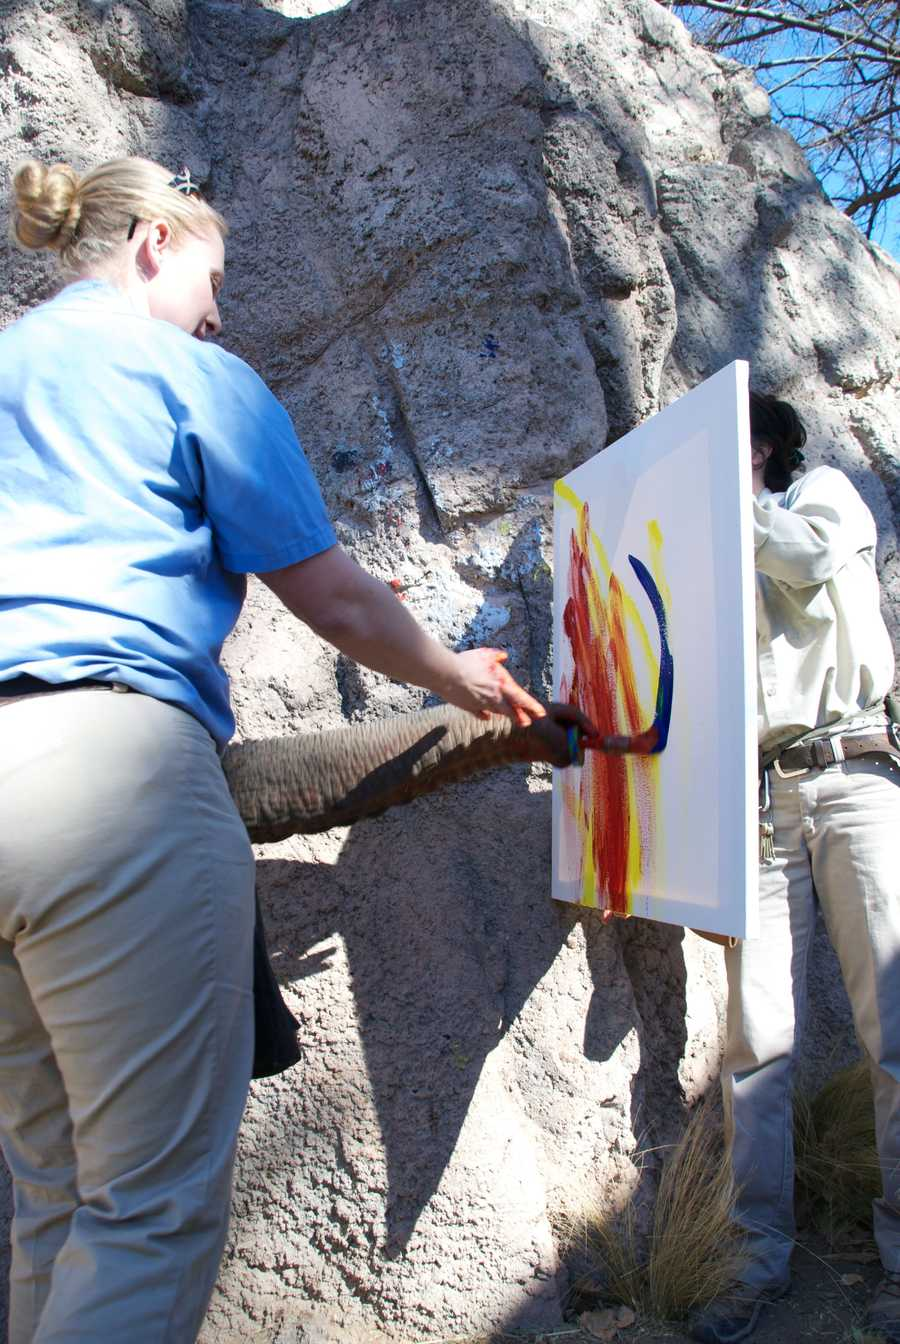 The following are past paintings made by elephants at the zoo.